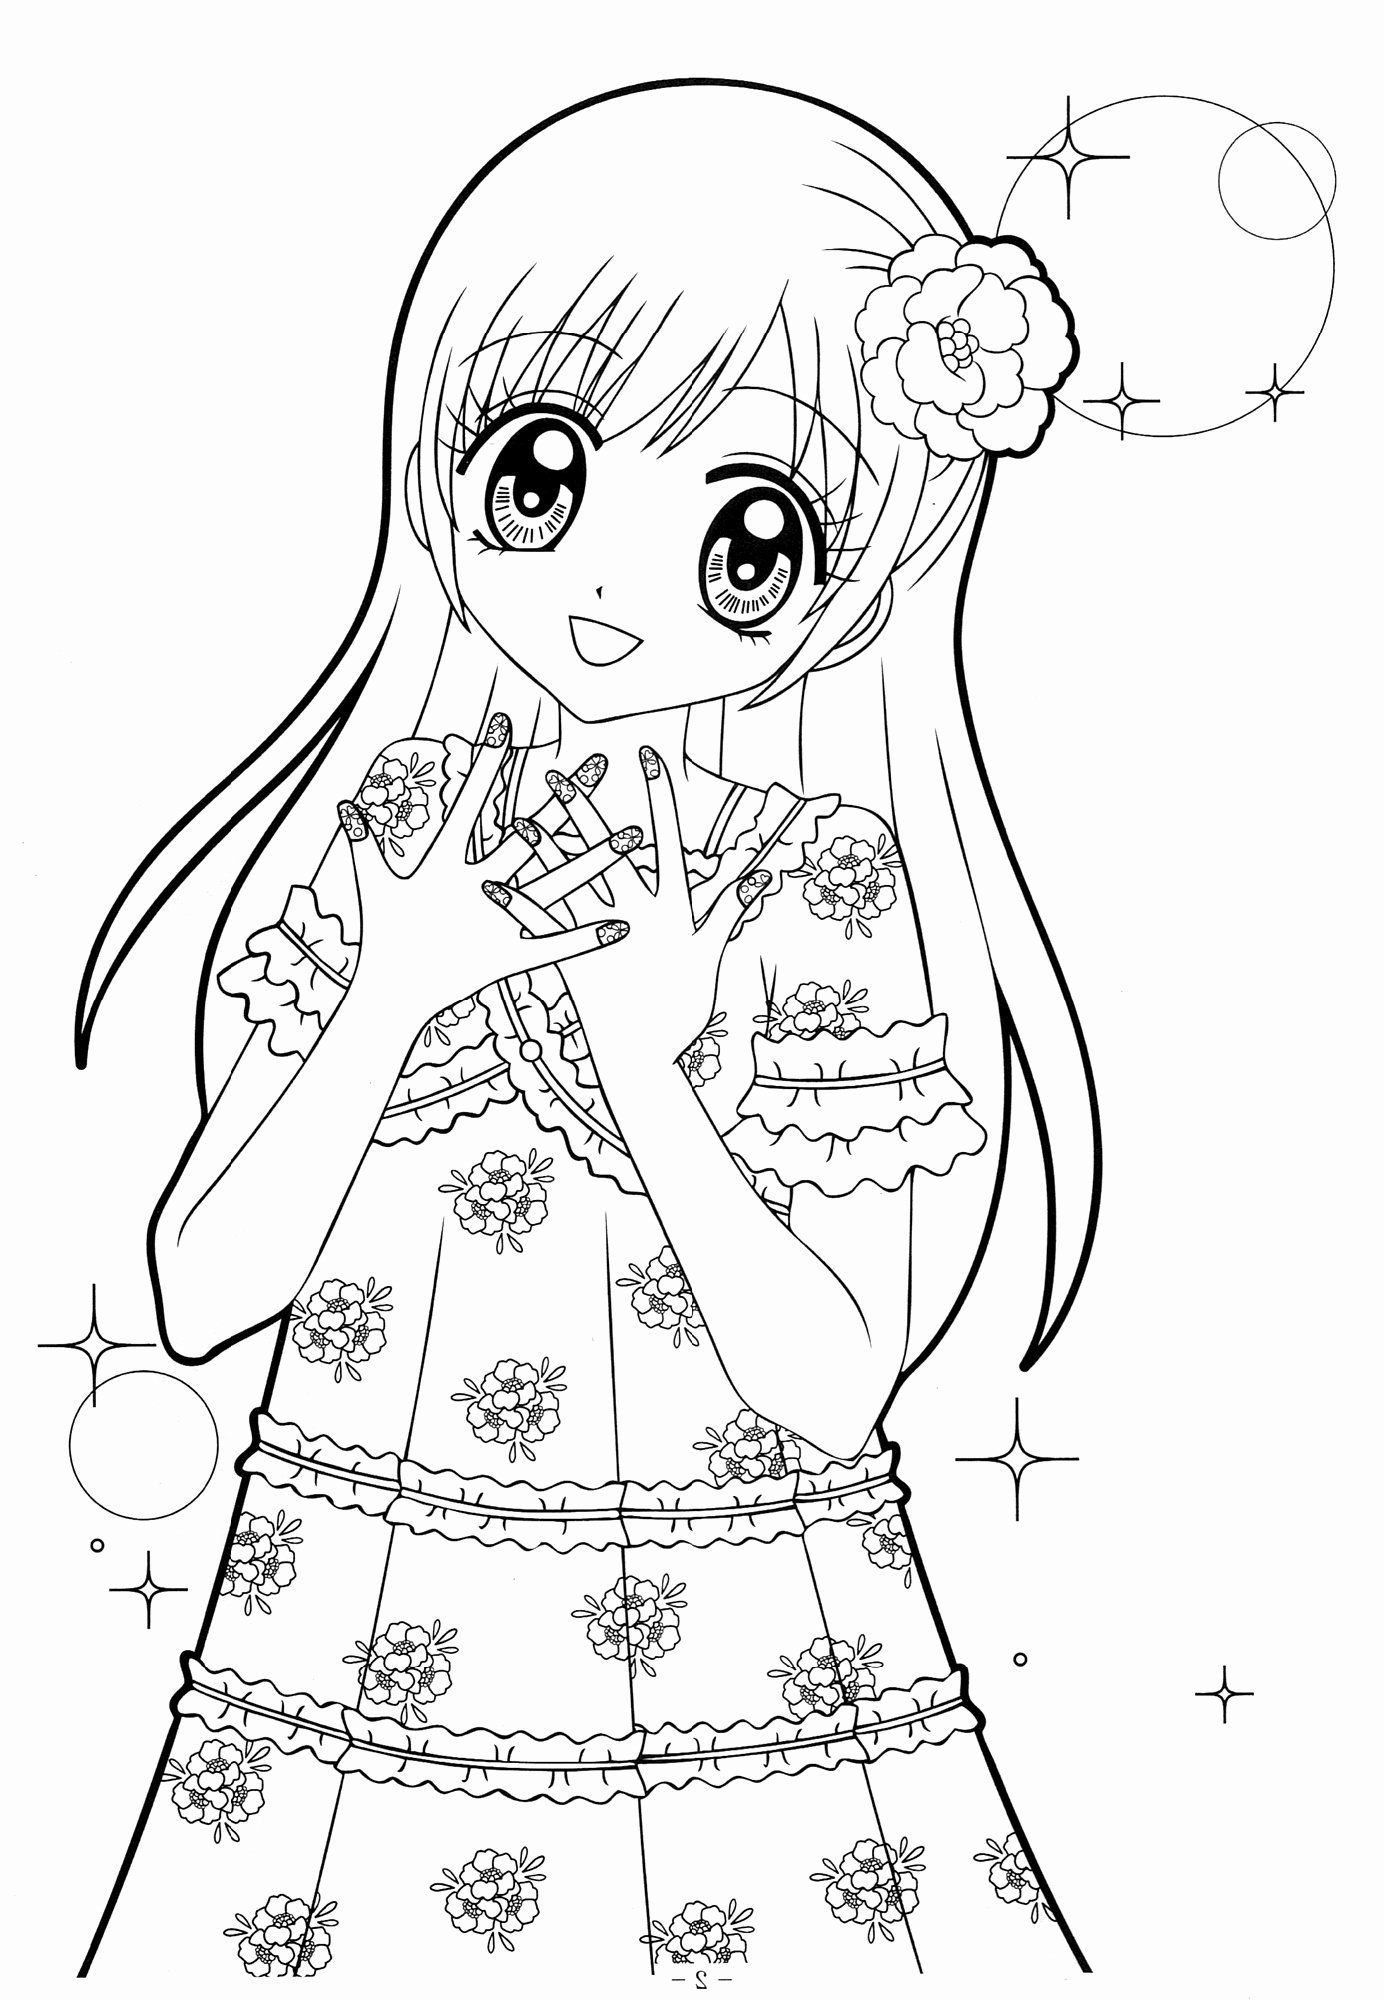 Free Download Supreme Coloring Pages